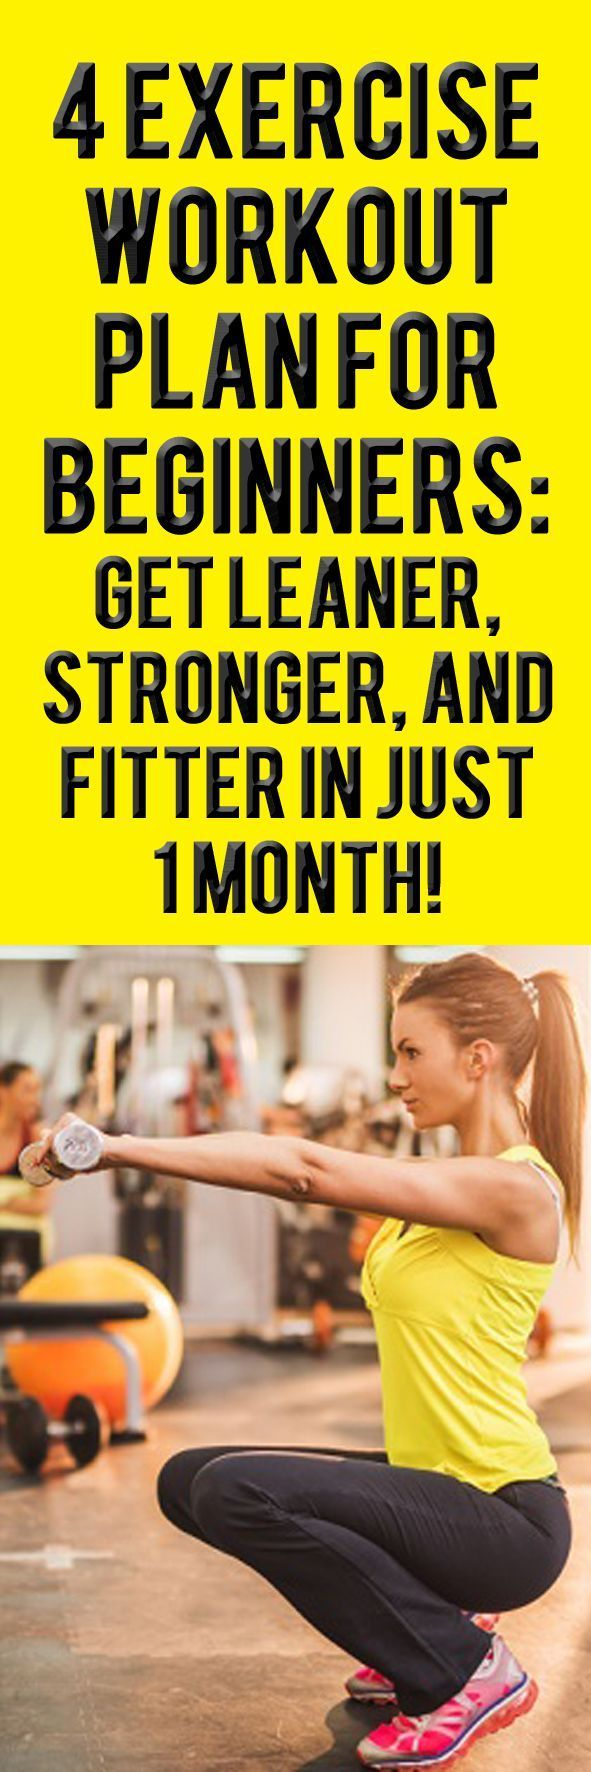 4 EXERCISE WORKOUT PLAN FOR BEGINNERS: GET LEANER ...